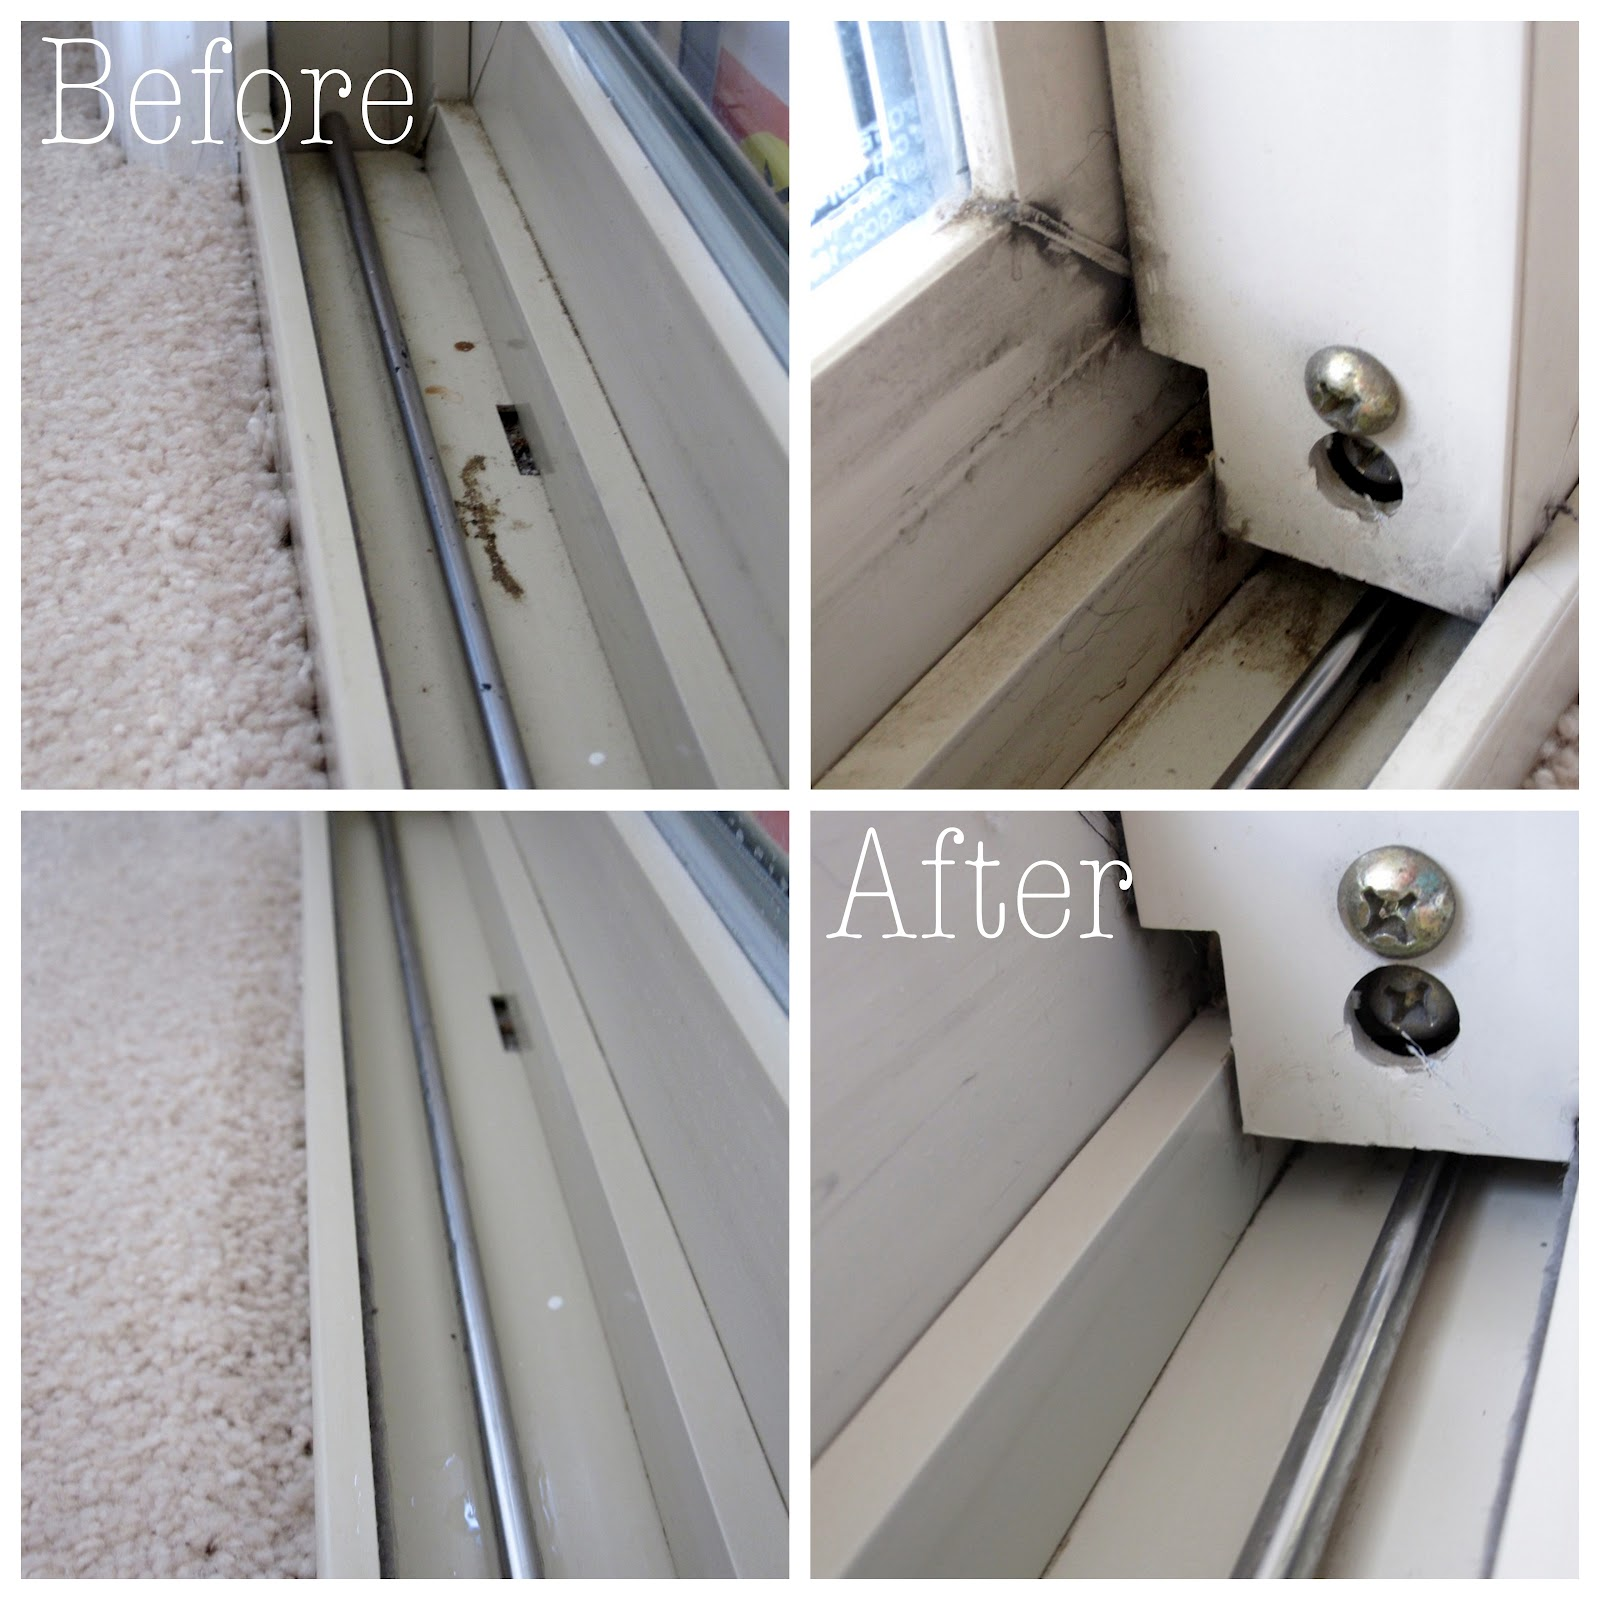 How to clean window tracks - Ask Anna